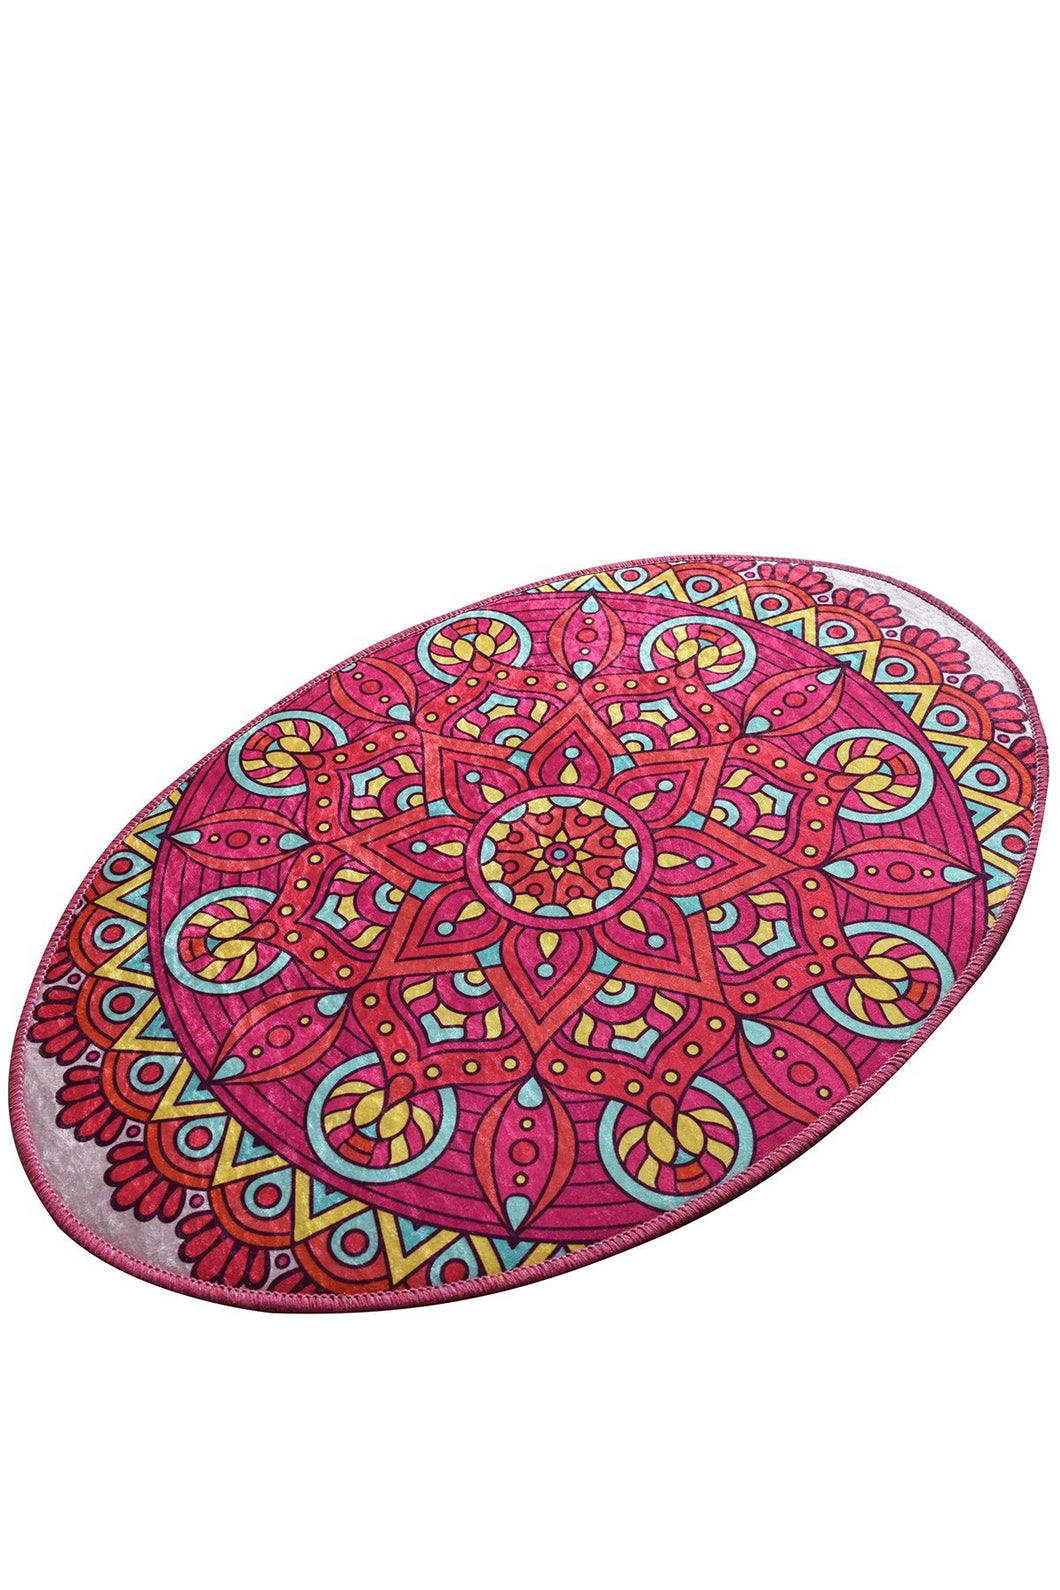 Antdecor Pink Mandala Design Decorative Oval Area Rug